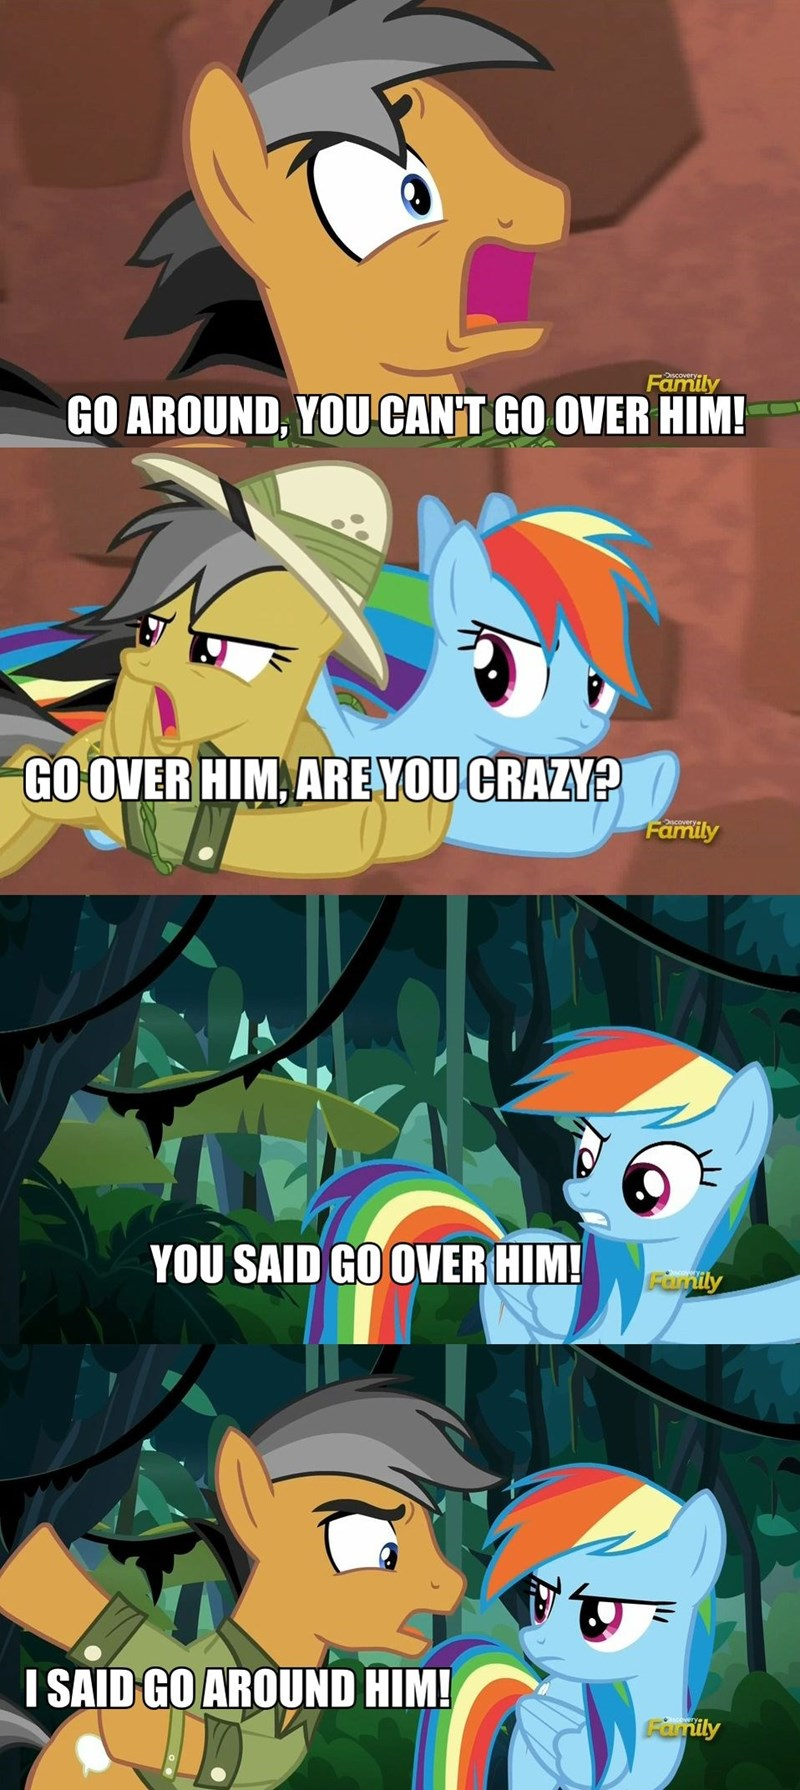 Indiana Jones quibble pants stranger than fan fiction daring do rainbow dash - 8966825984